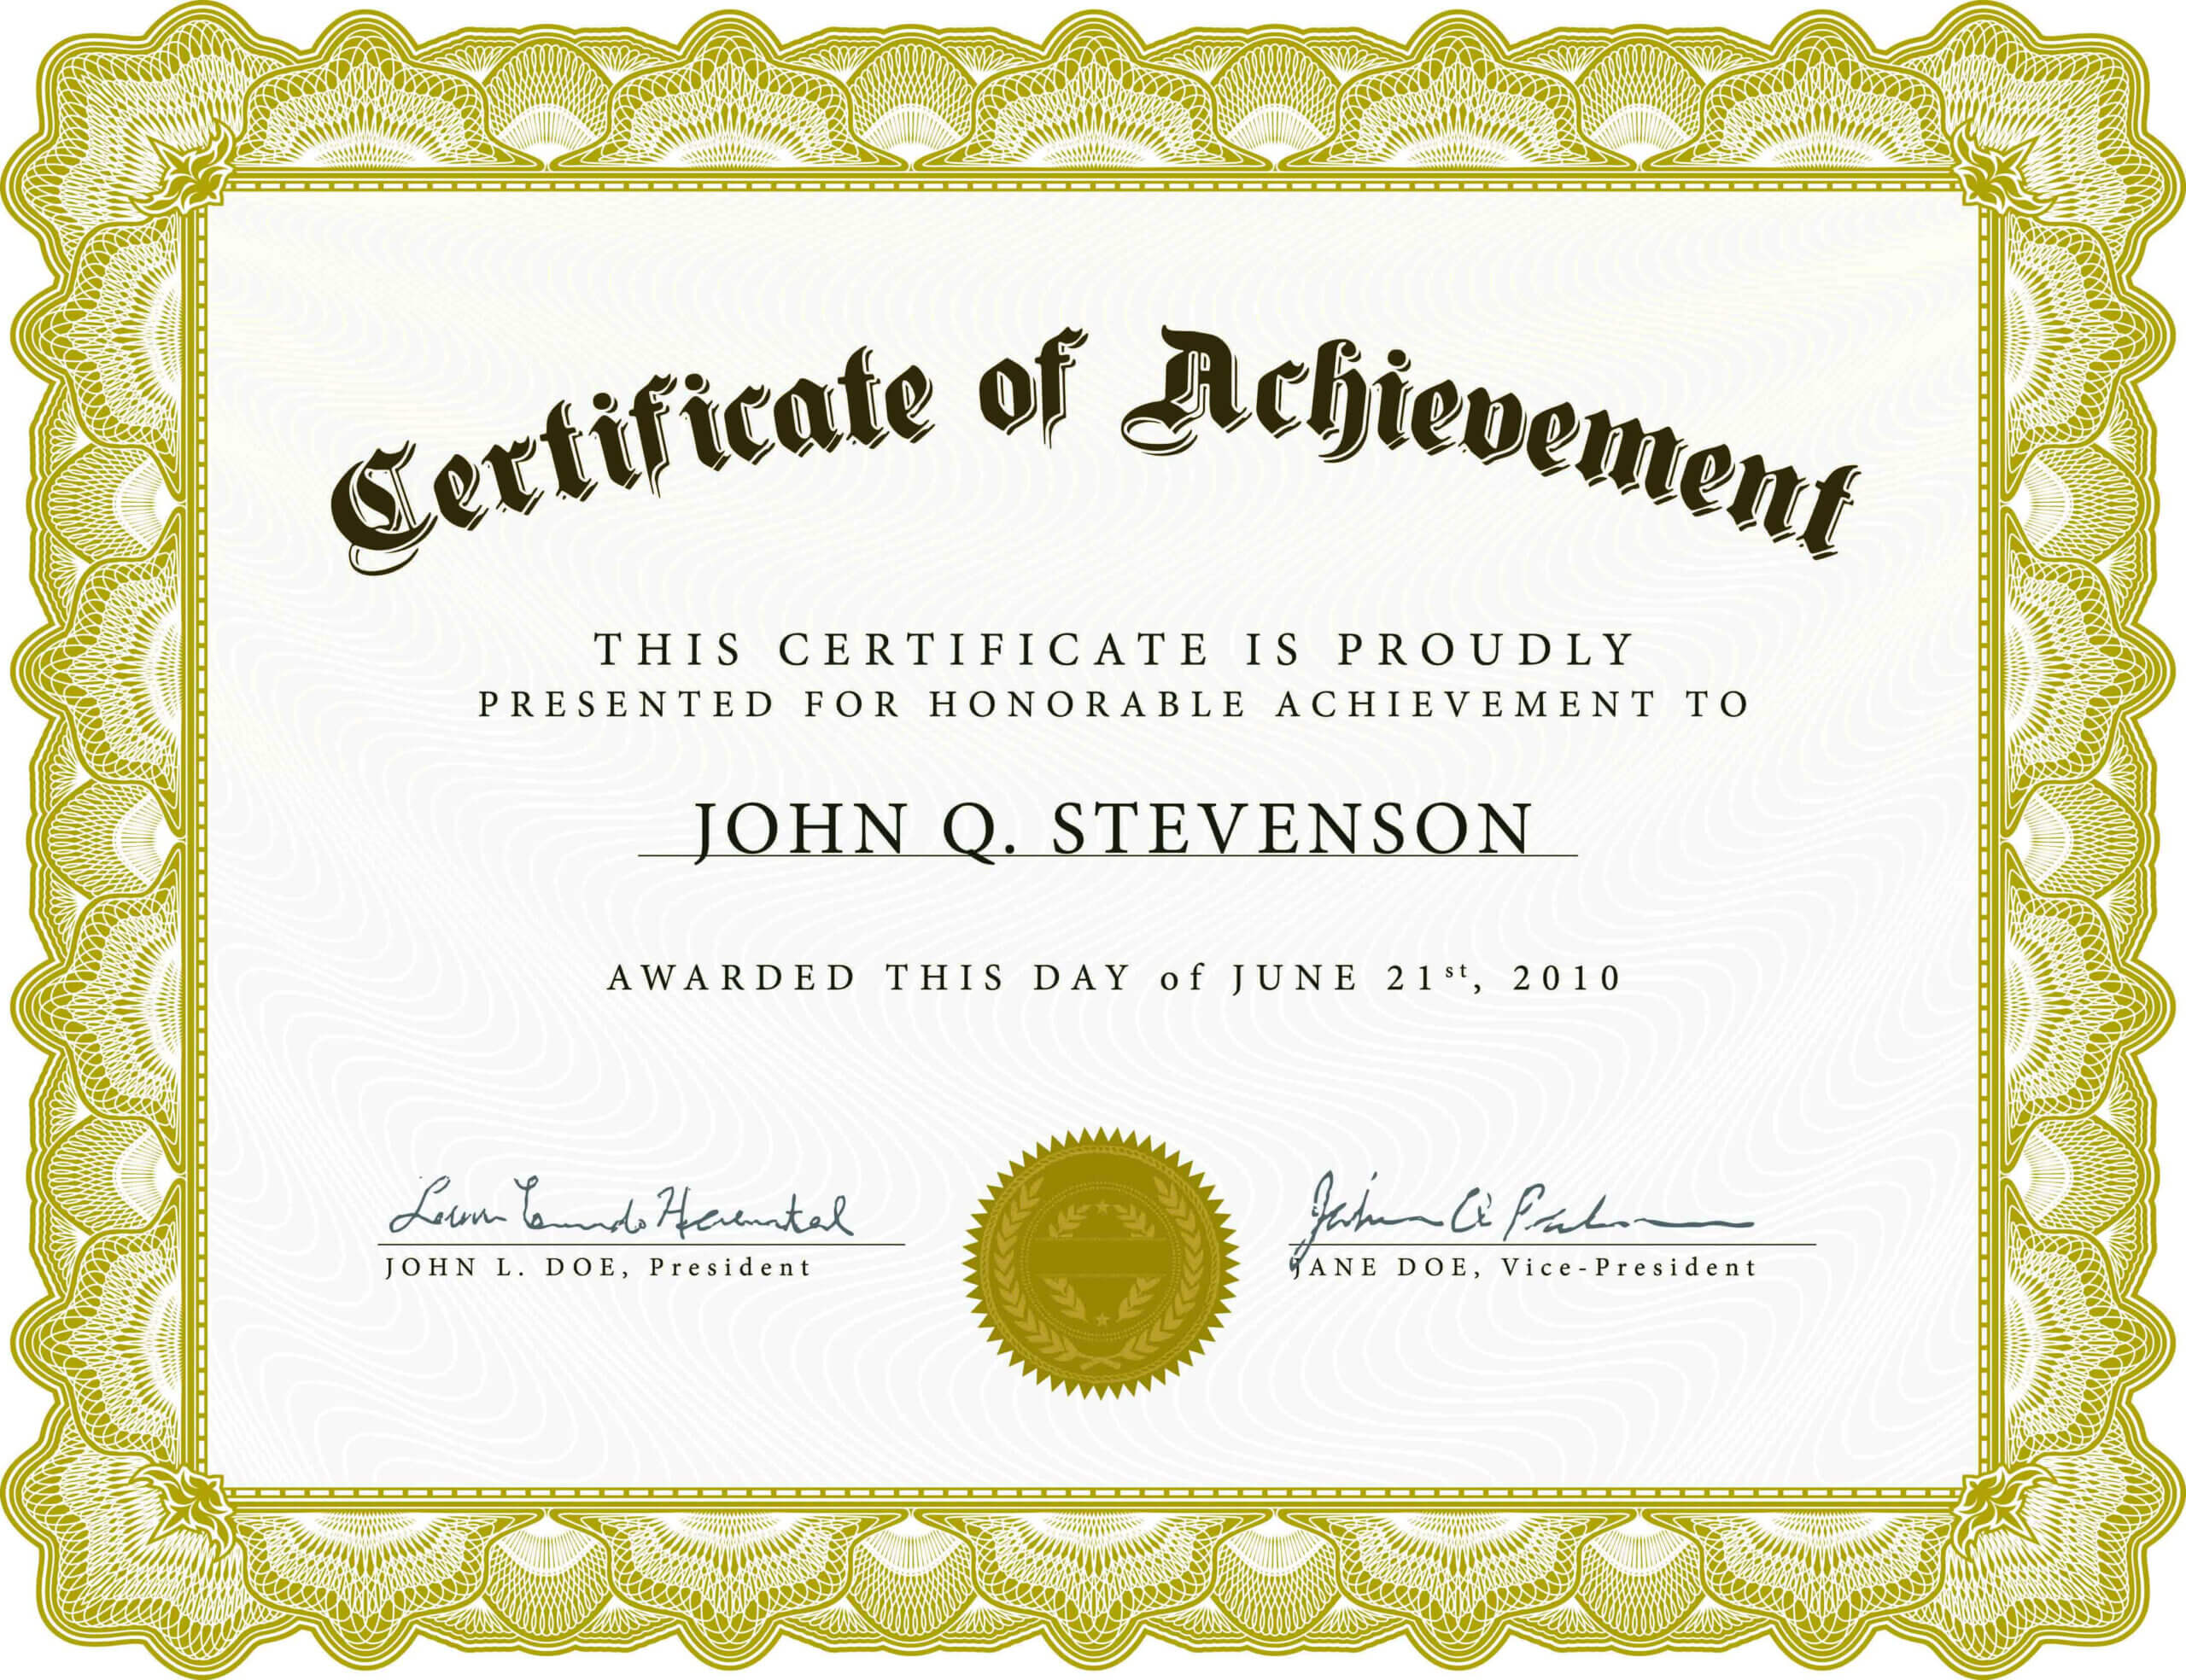 002 Word Certificate Of Achievement Template Outstanding Within Army Certificate Of Achievement Template